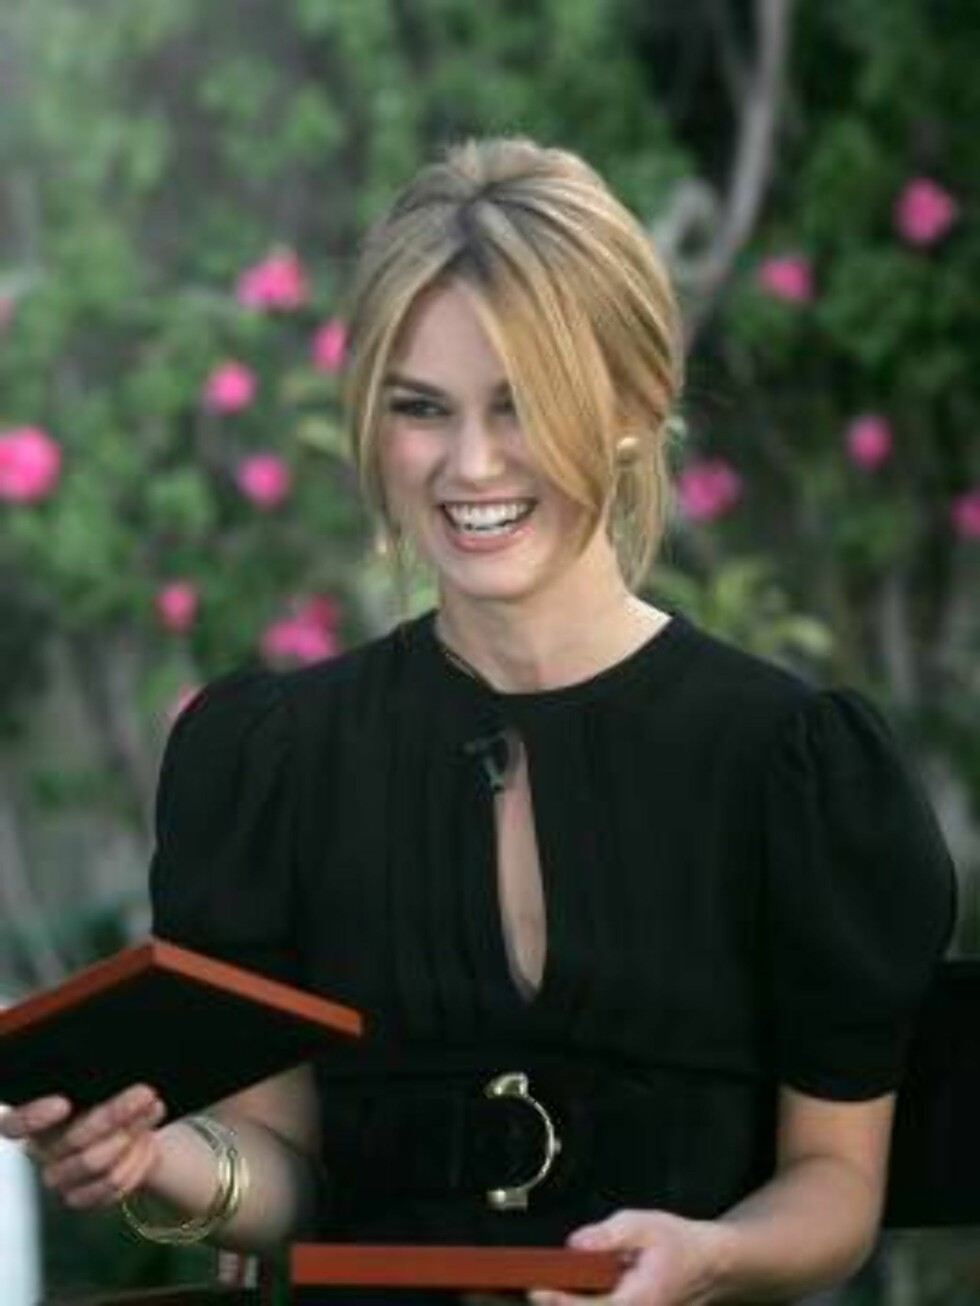 """BEVERLY HILLS, CA - FEBRUARY 13:  Actress Keira Knightley is interviewed at the Access Hollywood """"Kiss For A Cause"""" benefiting the Film Foundation and the Hollywood Museum at the Oscar Nominees Luncheon on February 13, 2006 in Beverly Hills, California. E Foto: All Over Press"""